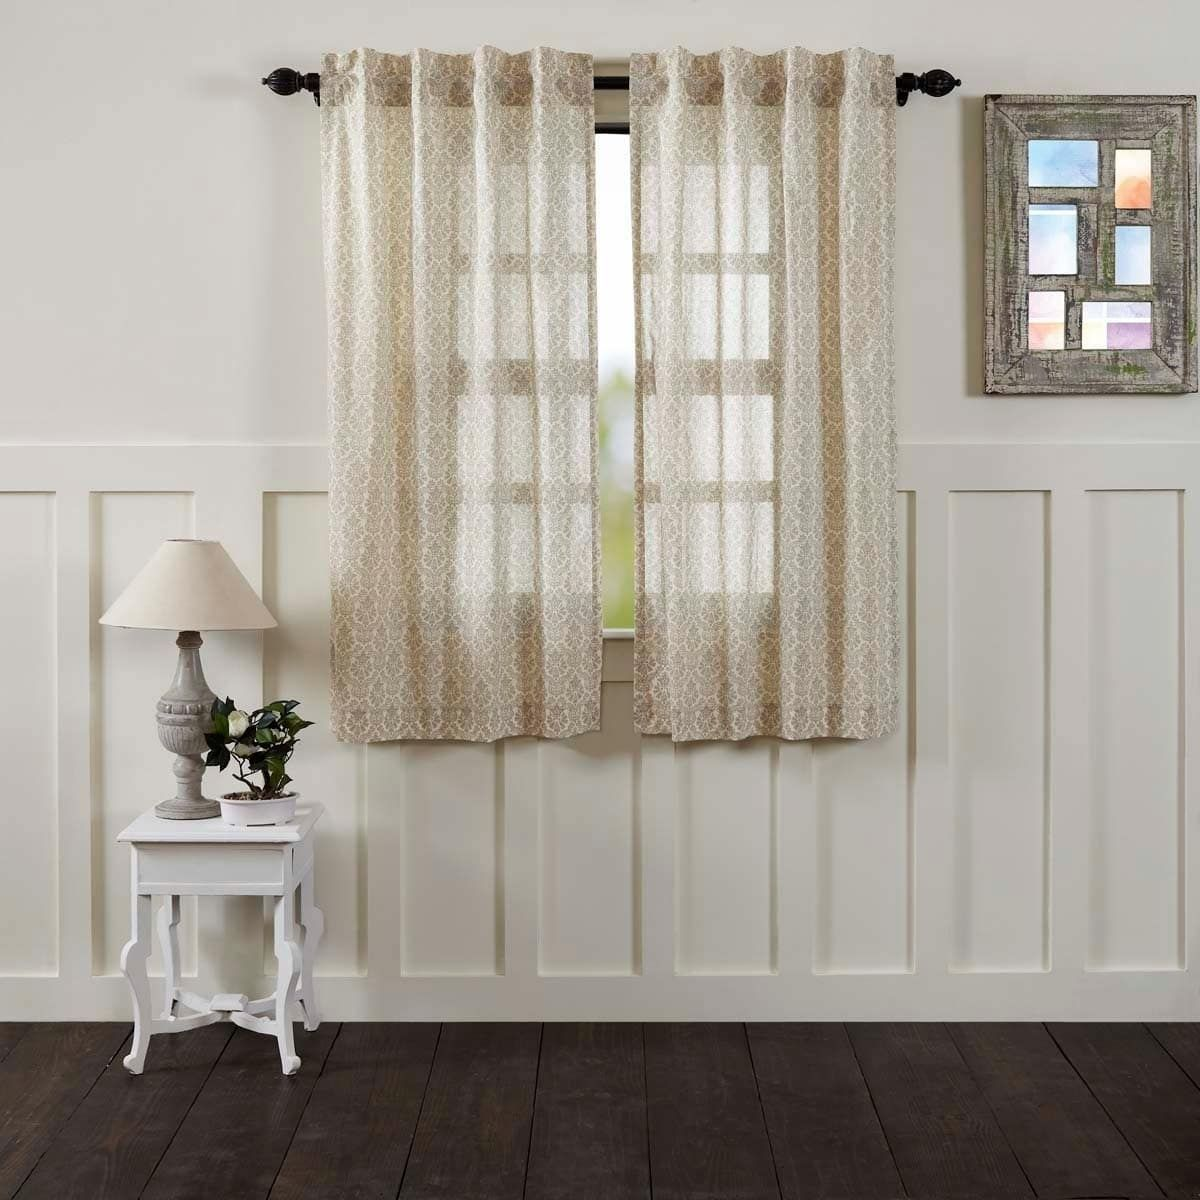 Vhc Brands Ava Lined Short Curtain Panel Set Of 2 63 X 36